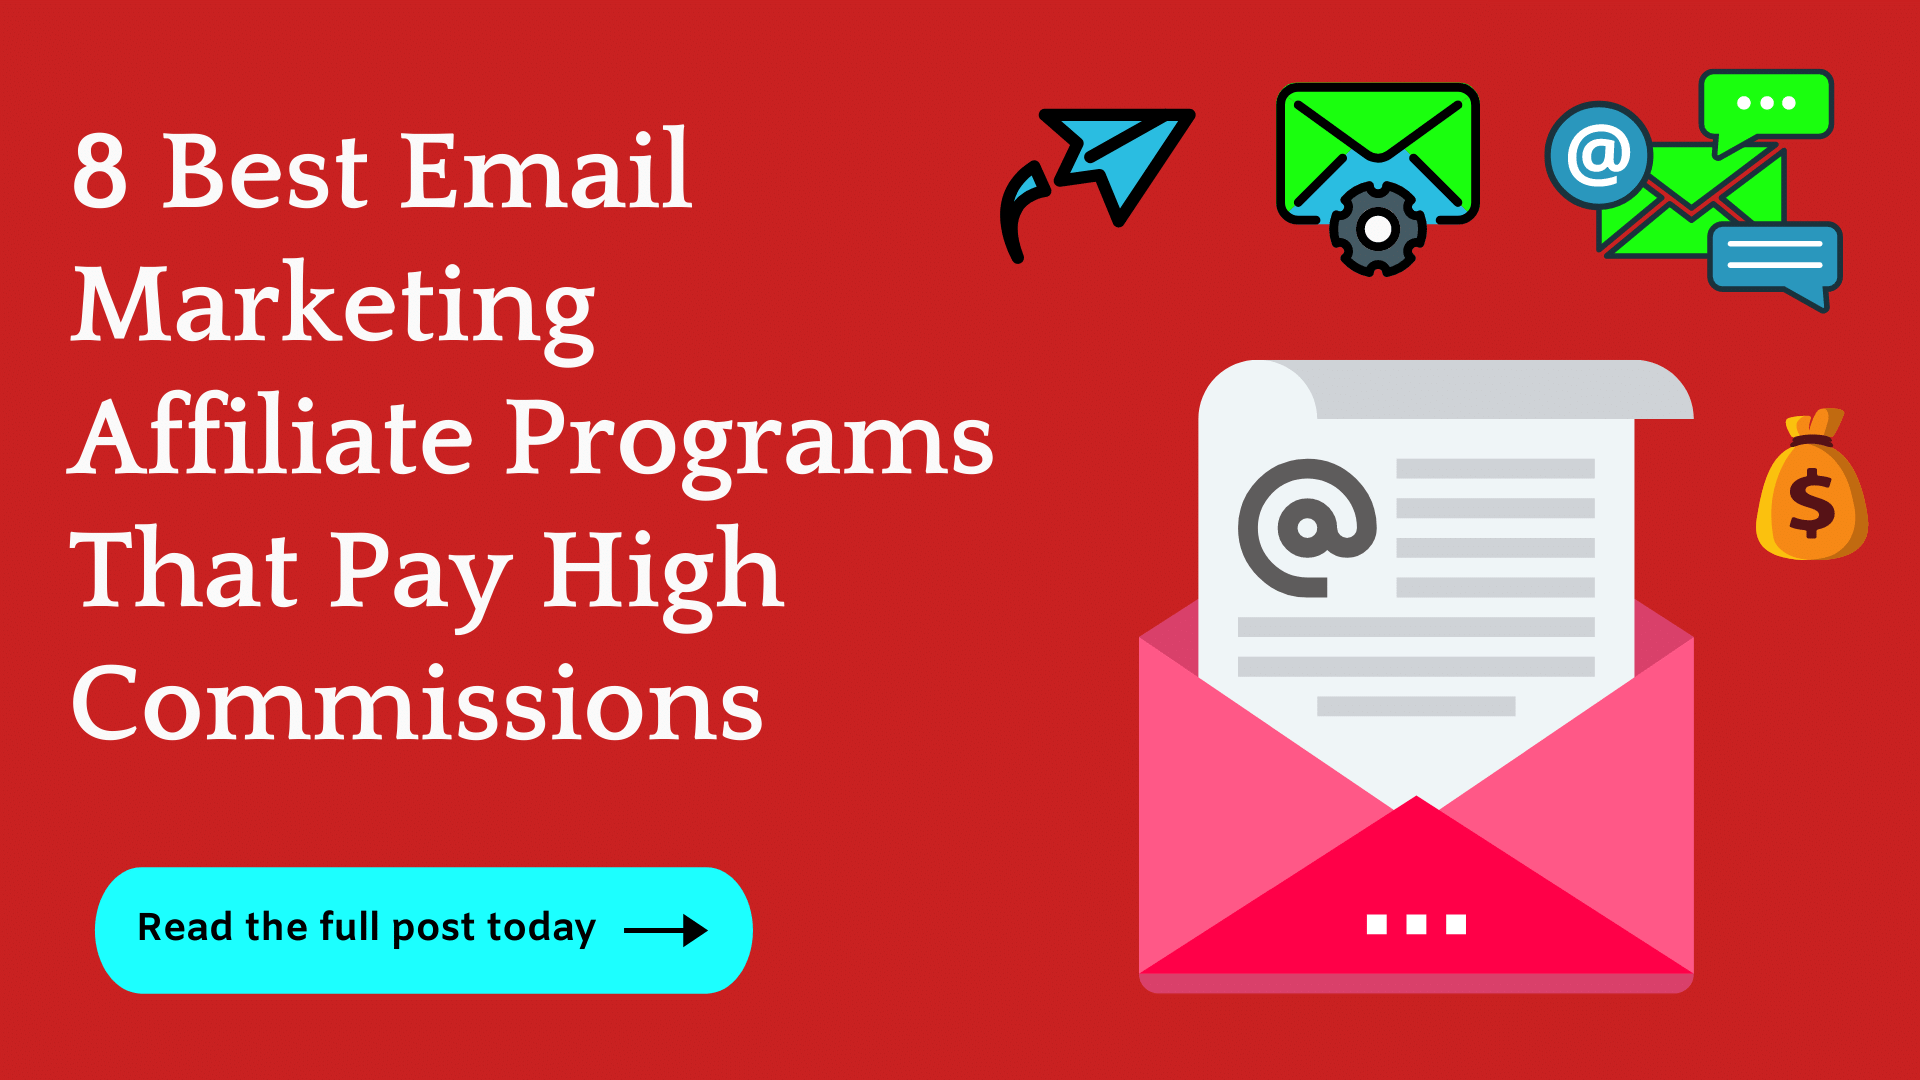 8 Best Email Marketing Affiliate Programs (Crazy Commissions)